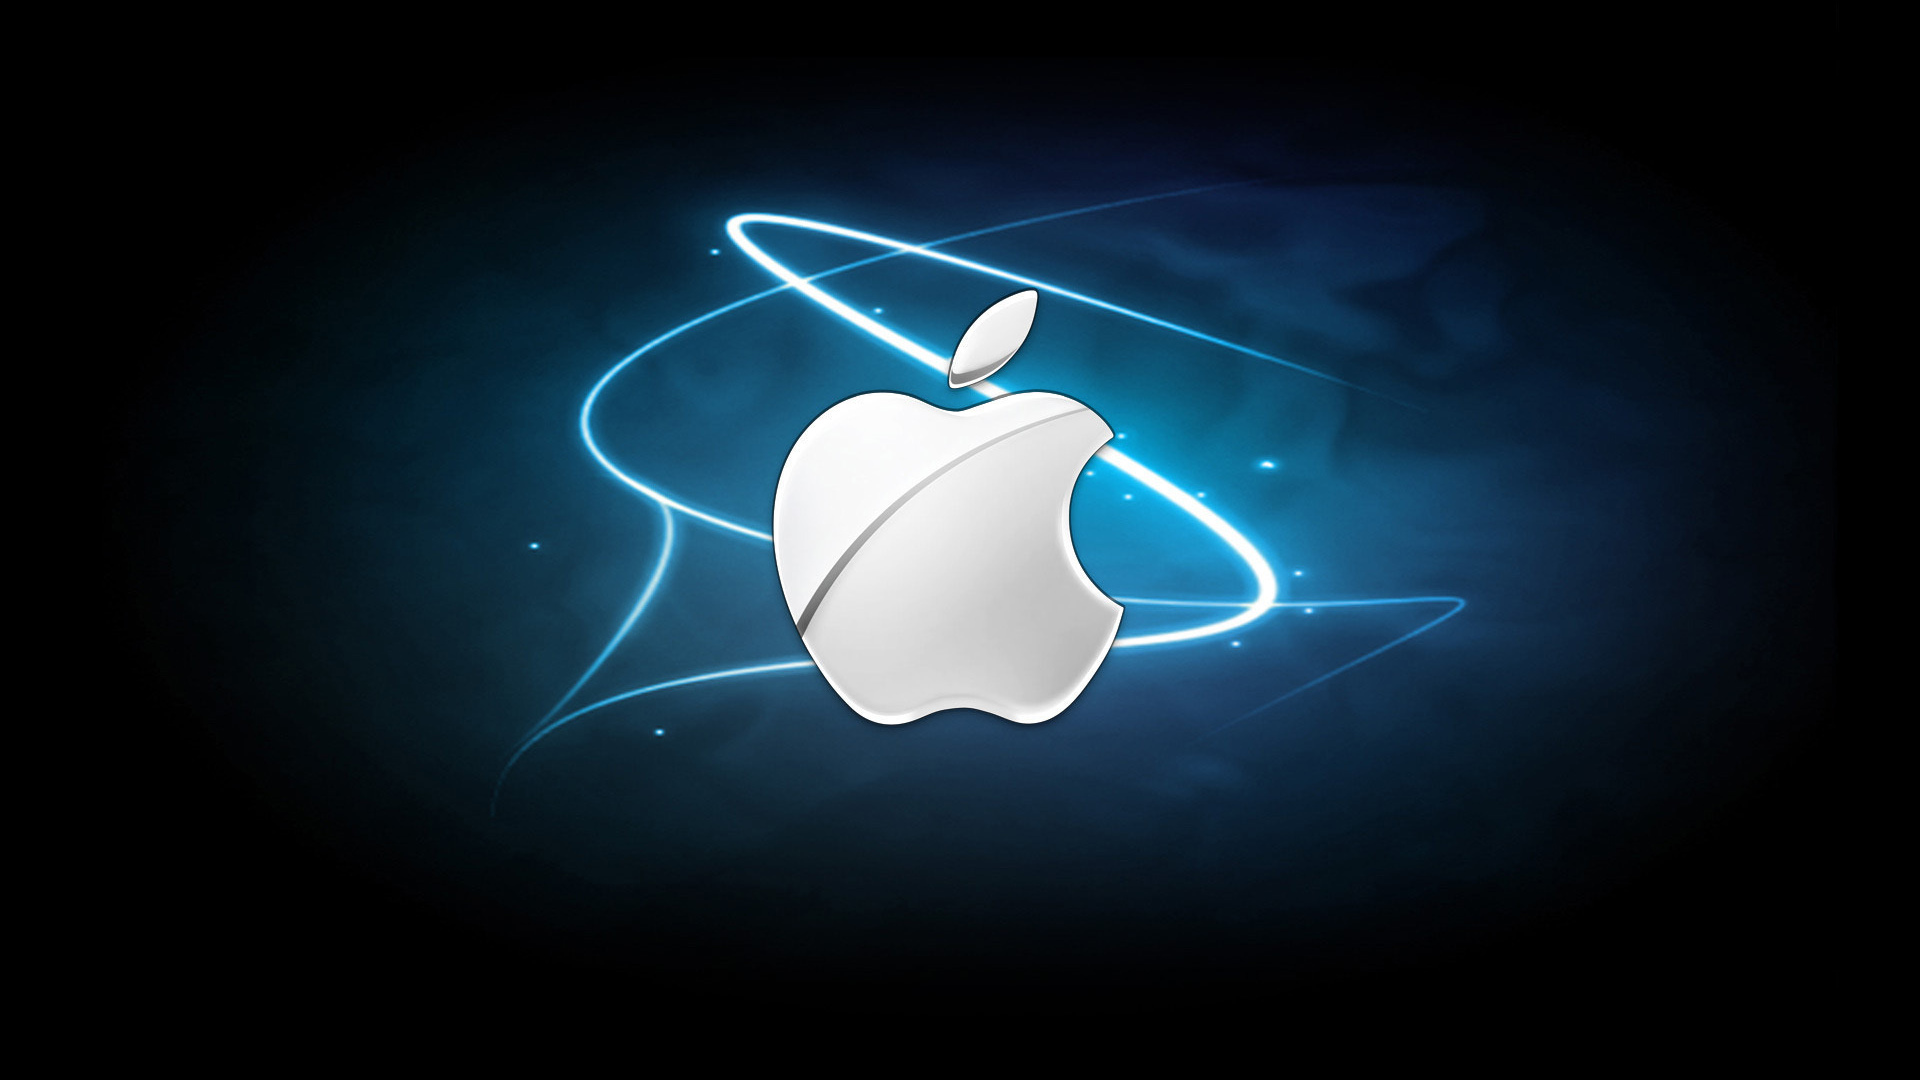 Apple Inc Is An American Multinational Technology Company Headquartered In Cupertino California That Designs Develops And Sells Consumer Electronics